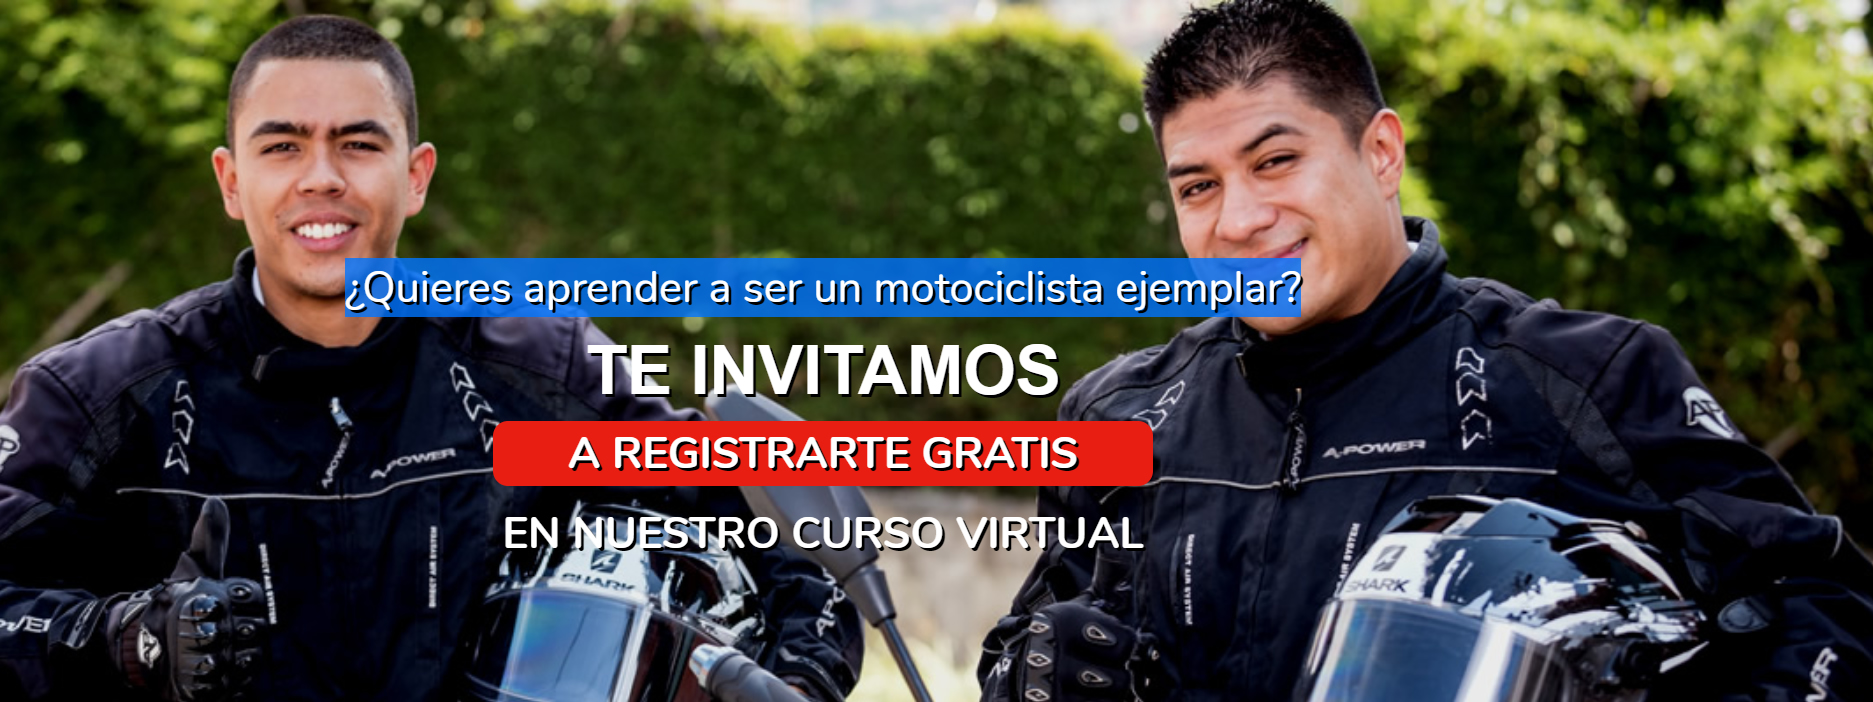 curso de conduccion de moto virtual de auteco